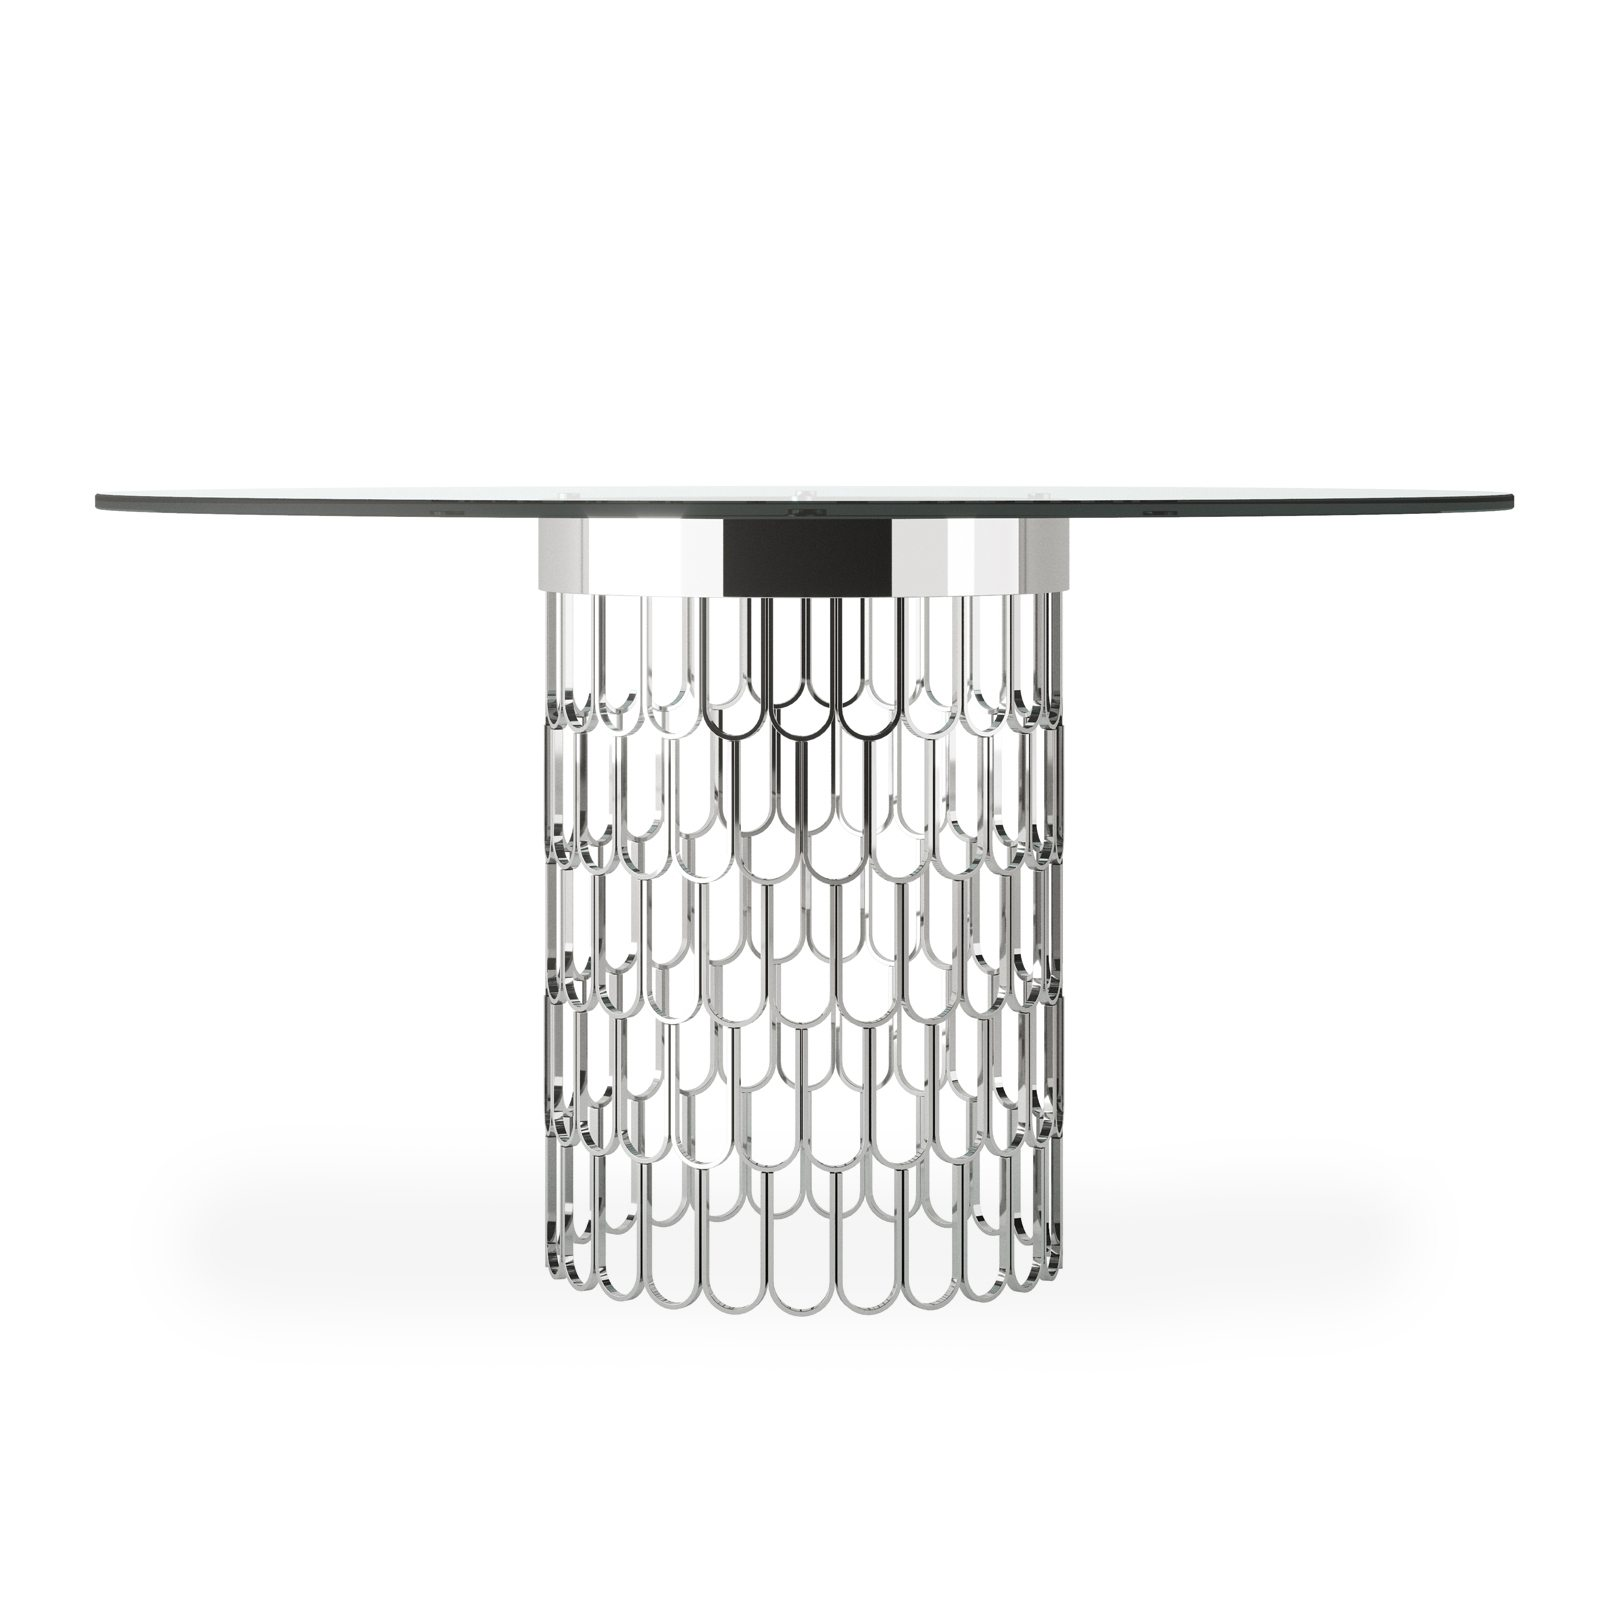 Feather-Dining-Table-Chrome-by-Bonham-&-Bonham-02